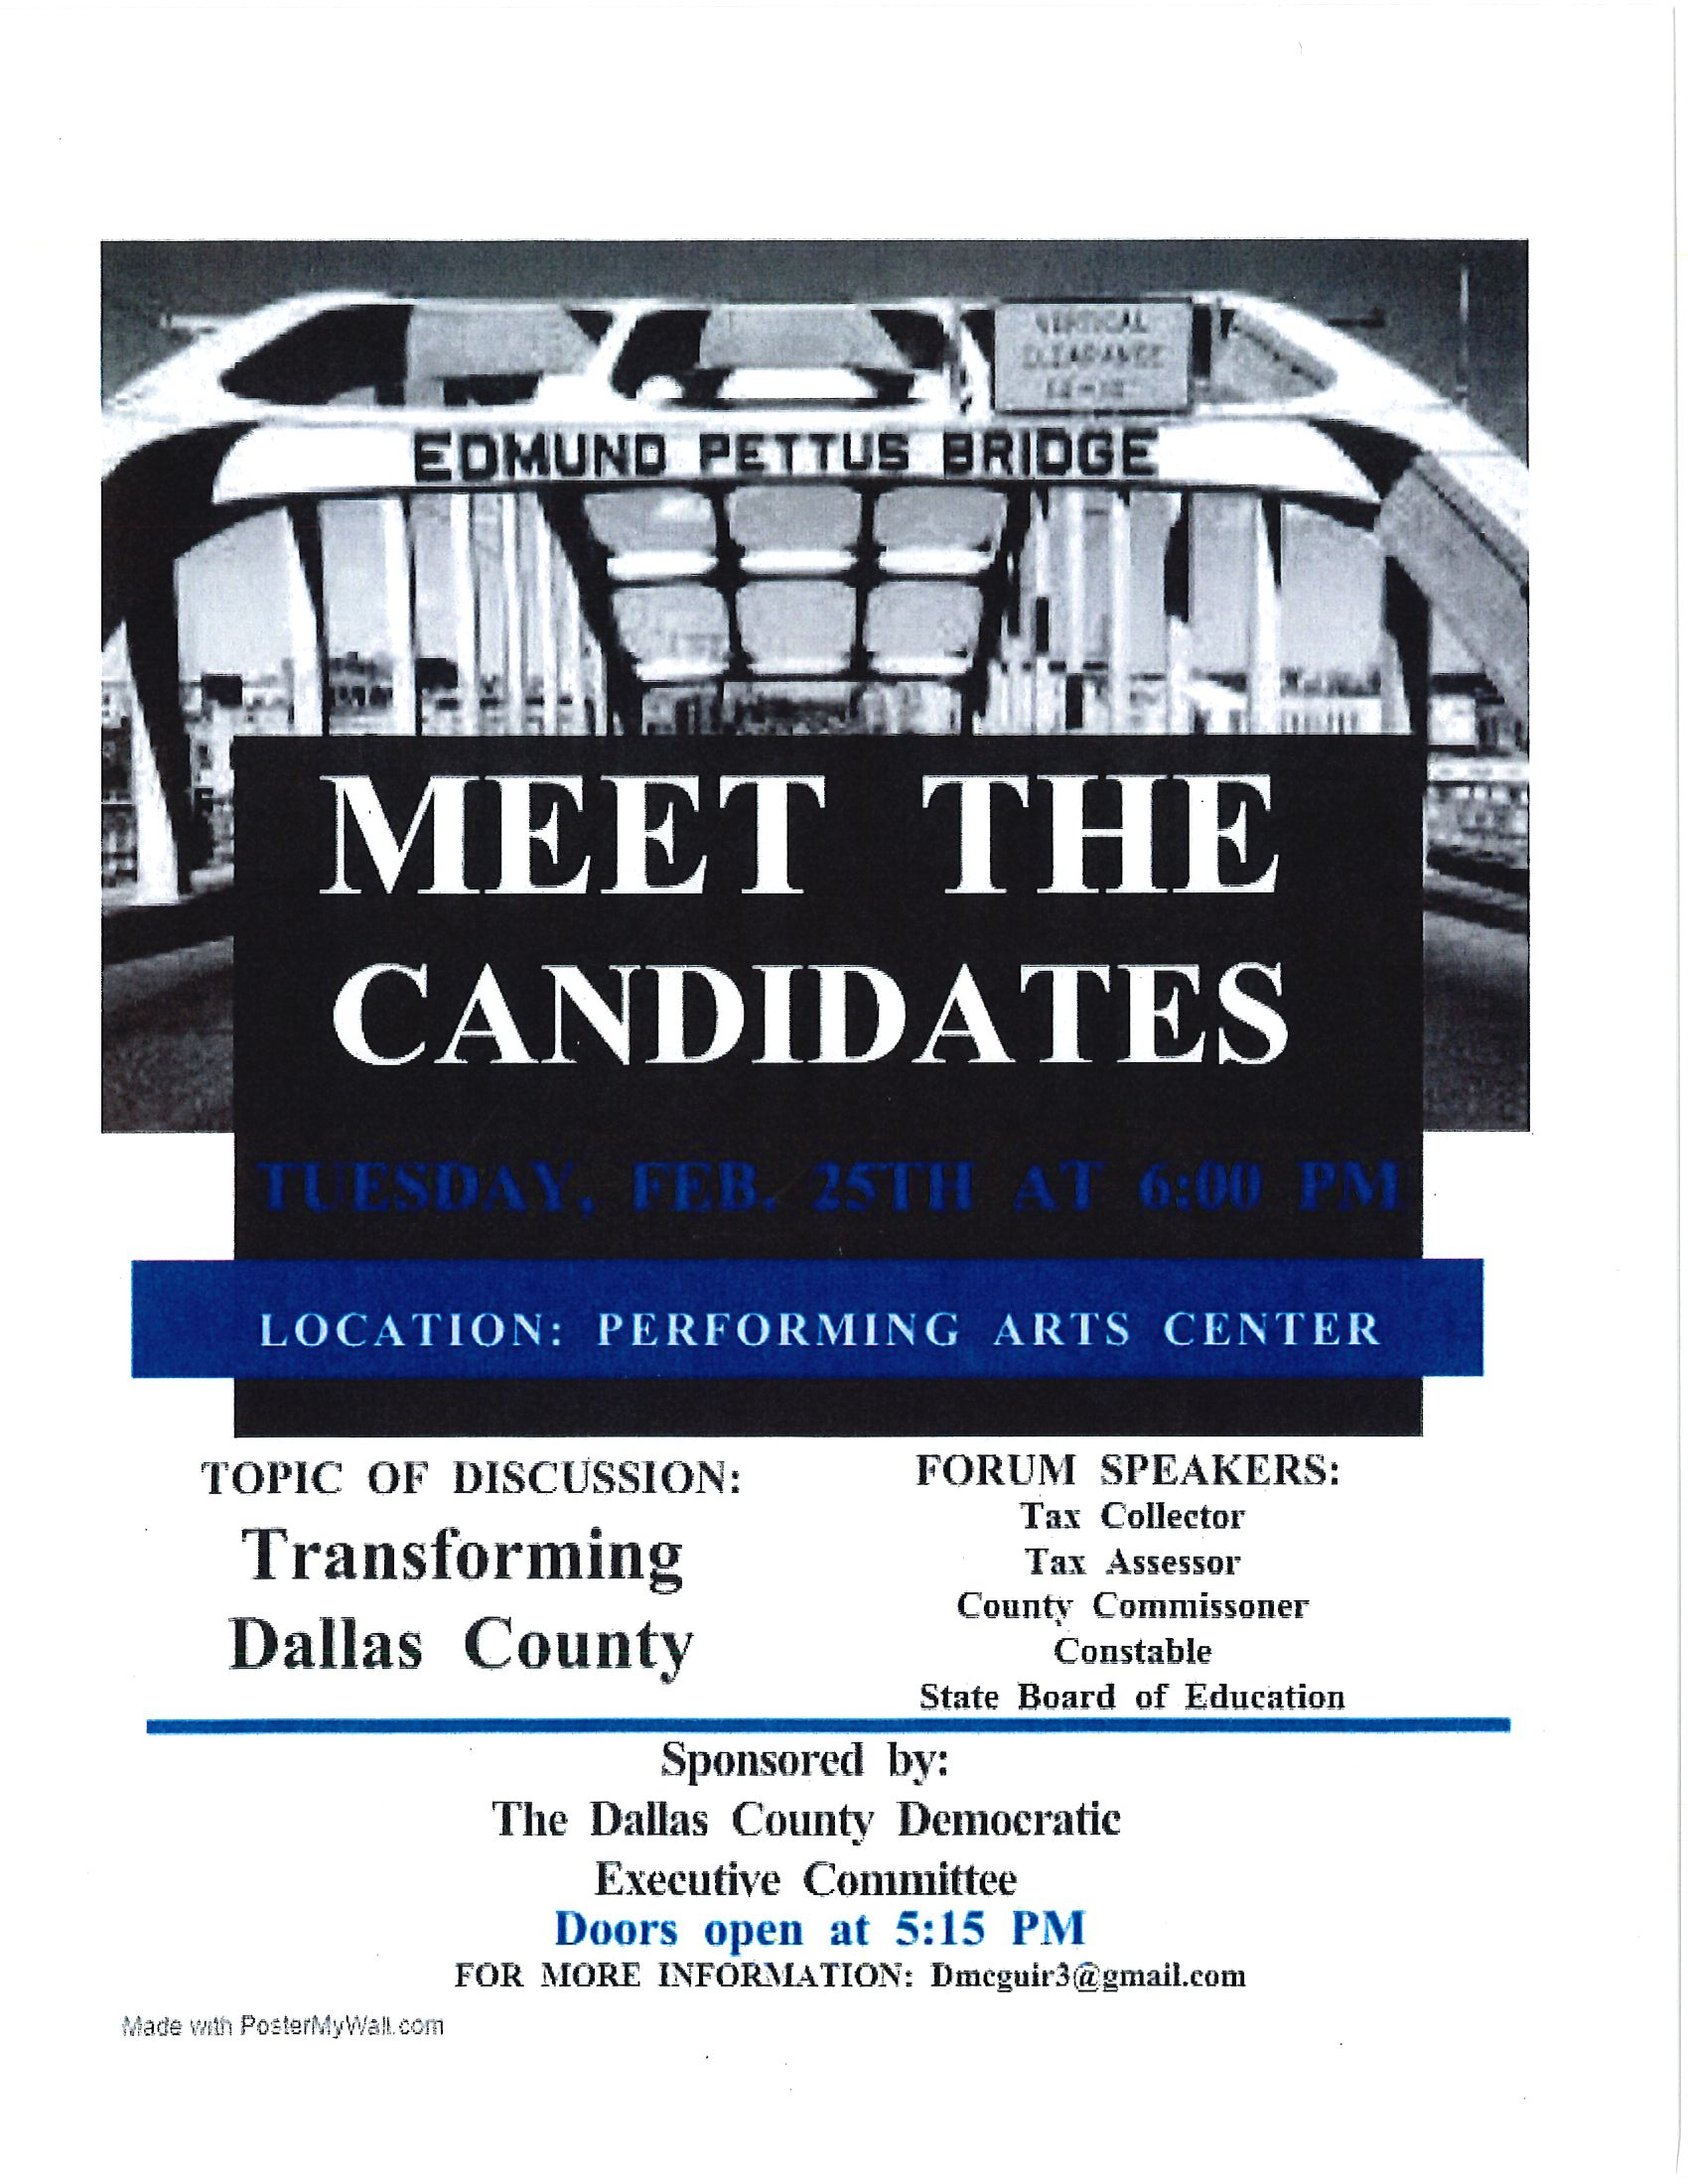 Meet the Candidates Feb